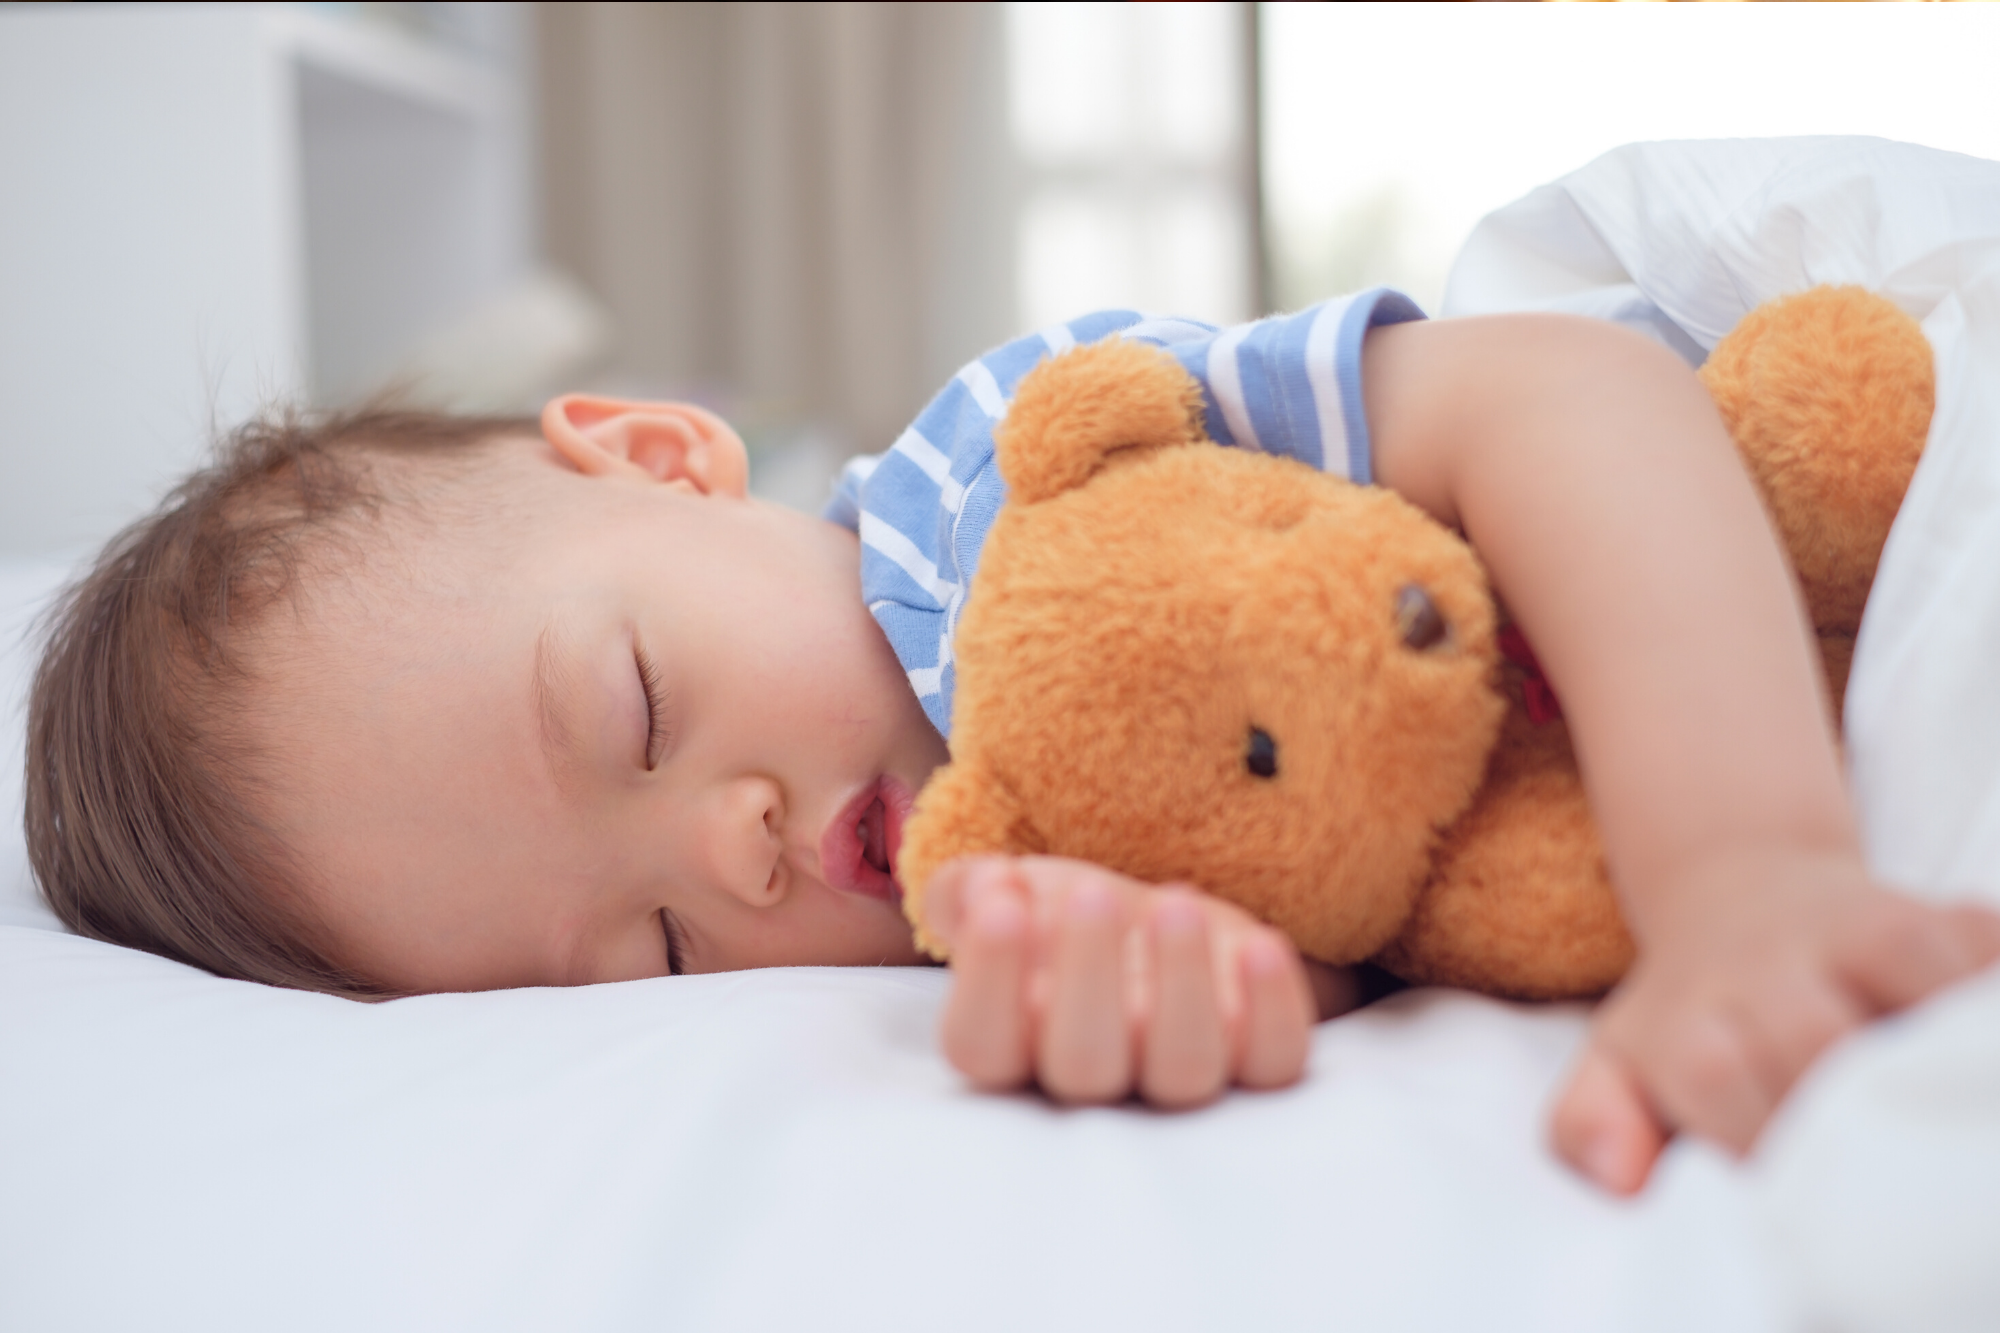 Child not experiencing sleep regressions, sleeping soundly in his bed while holding his teddy bear